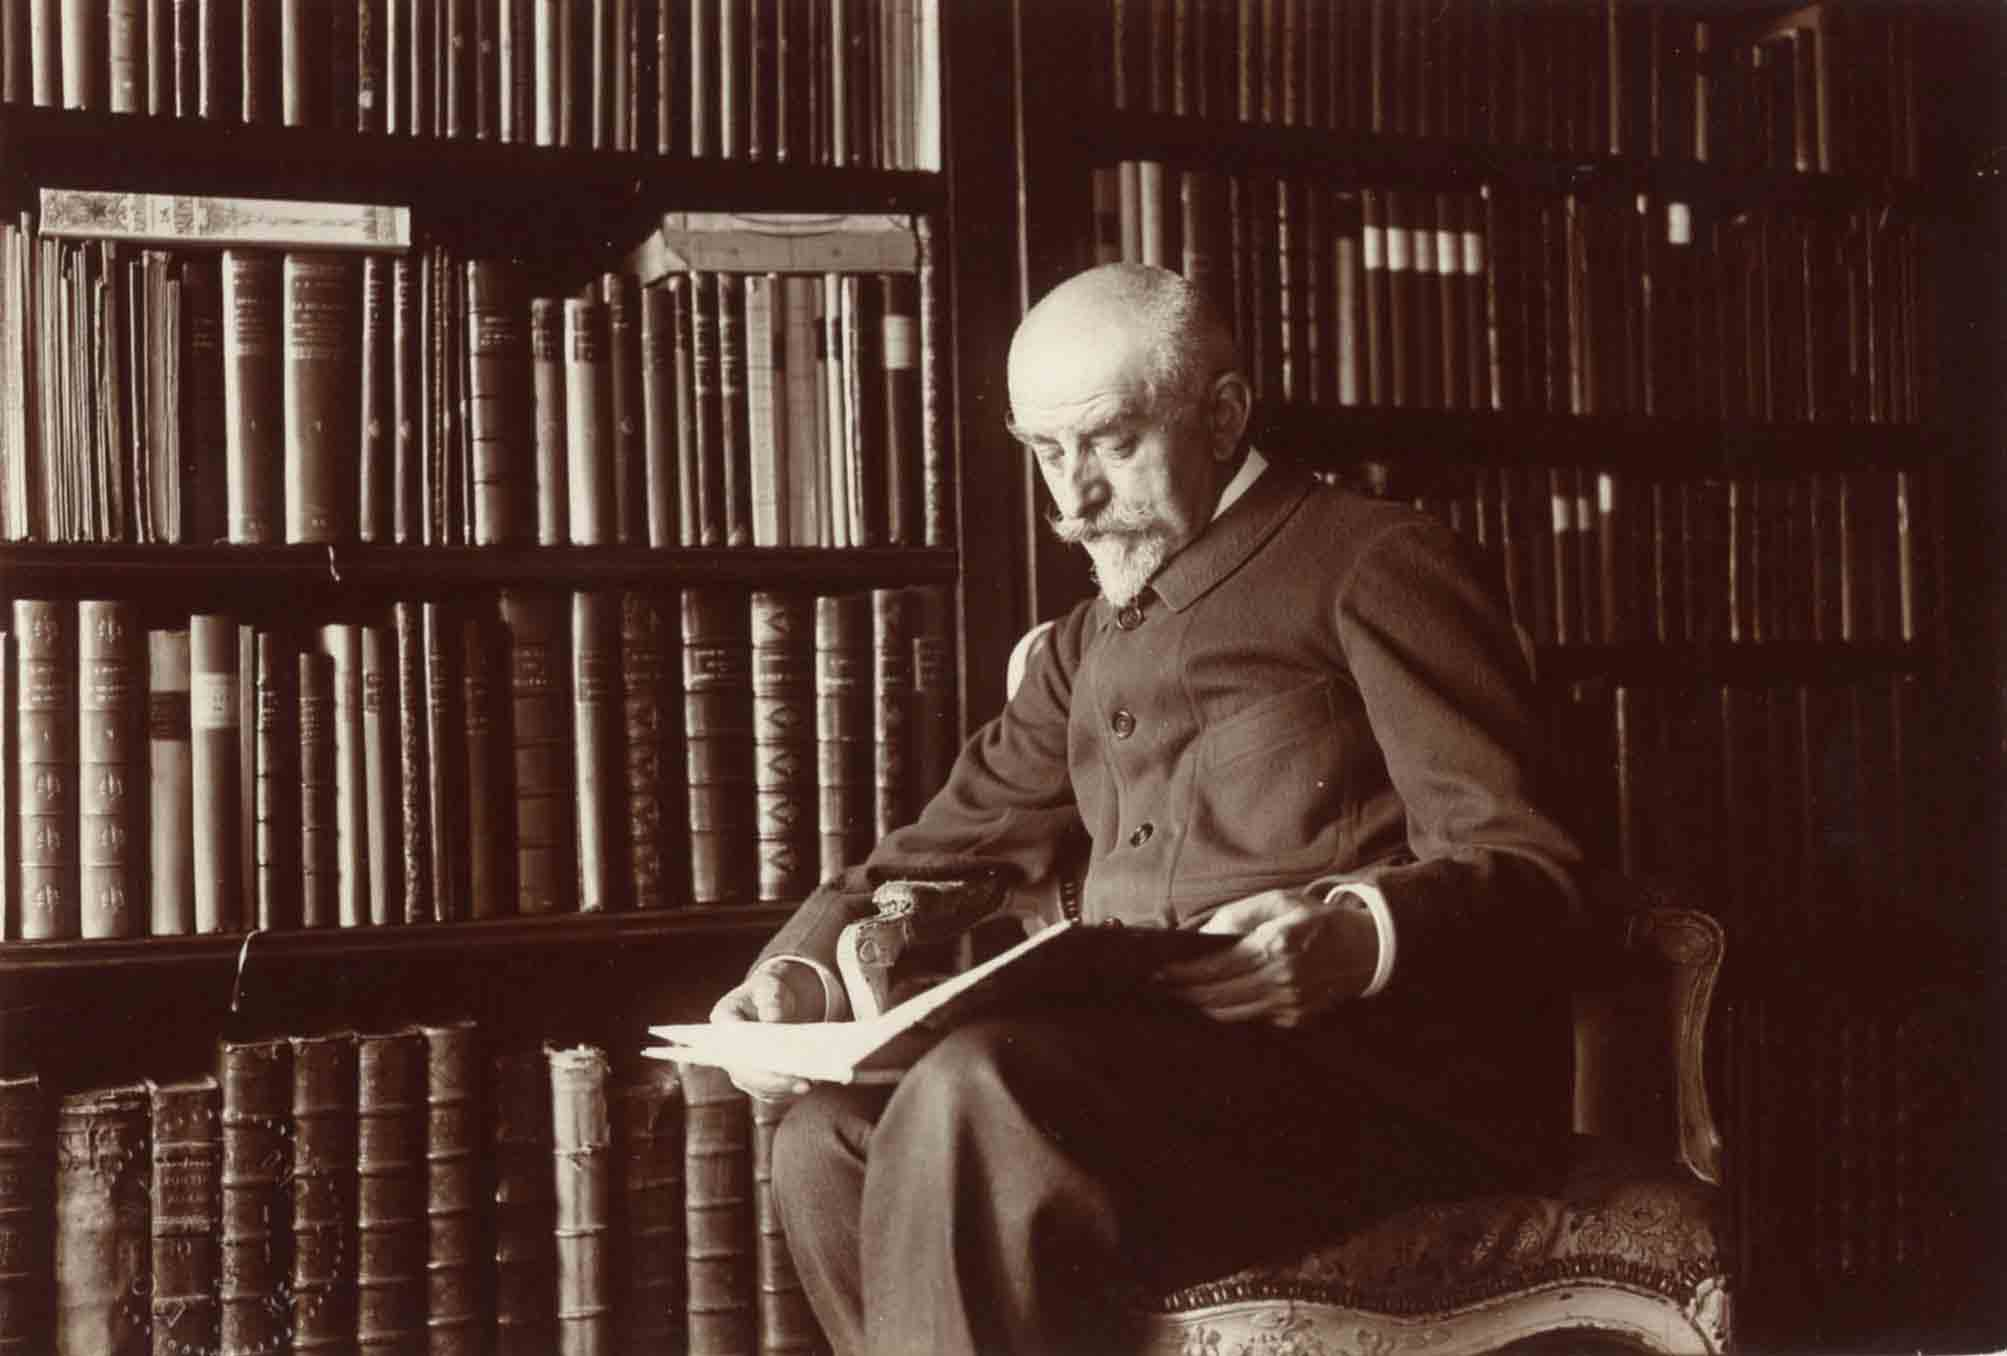 Joris Karl Huysmans